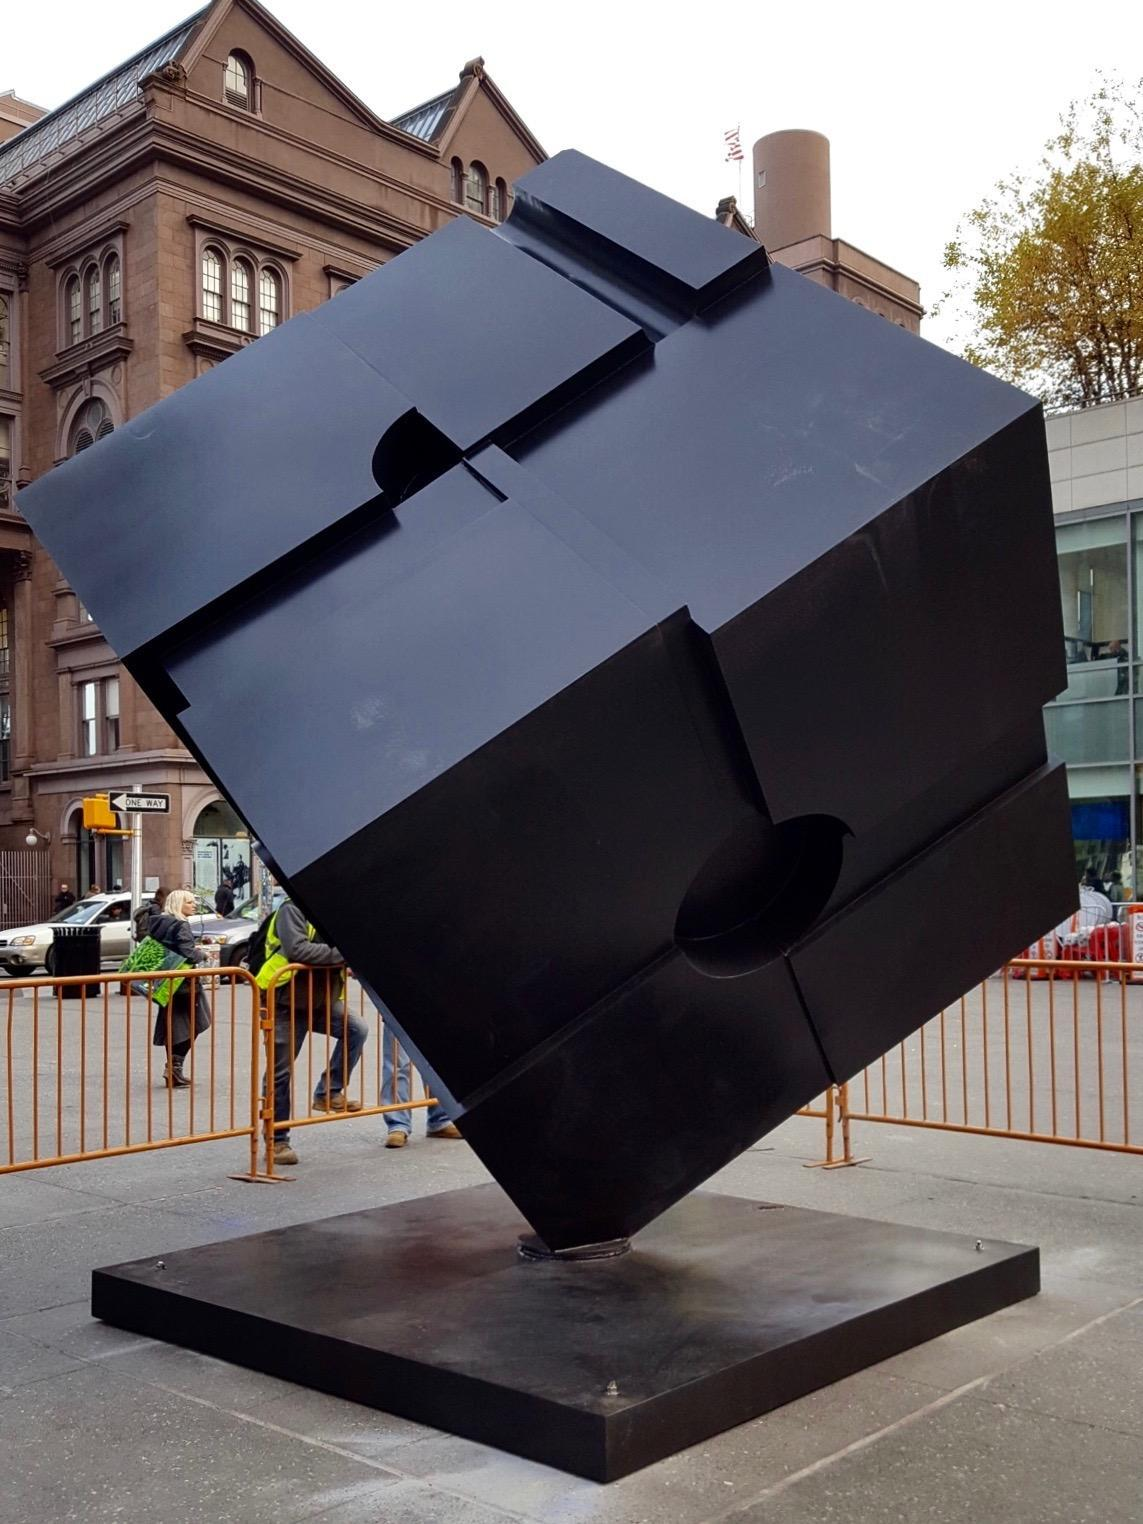 The Cube, originally installed in 1967, can be found on Astor Place in the East Village.